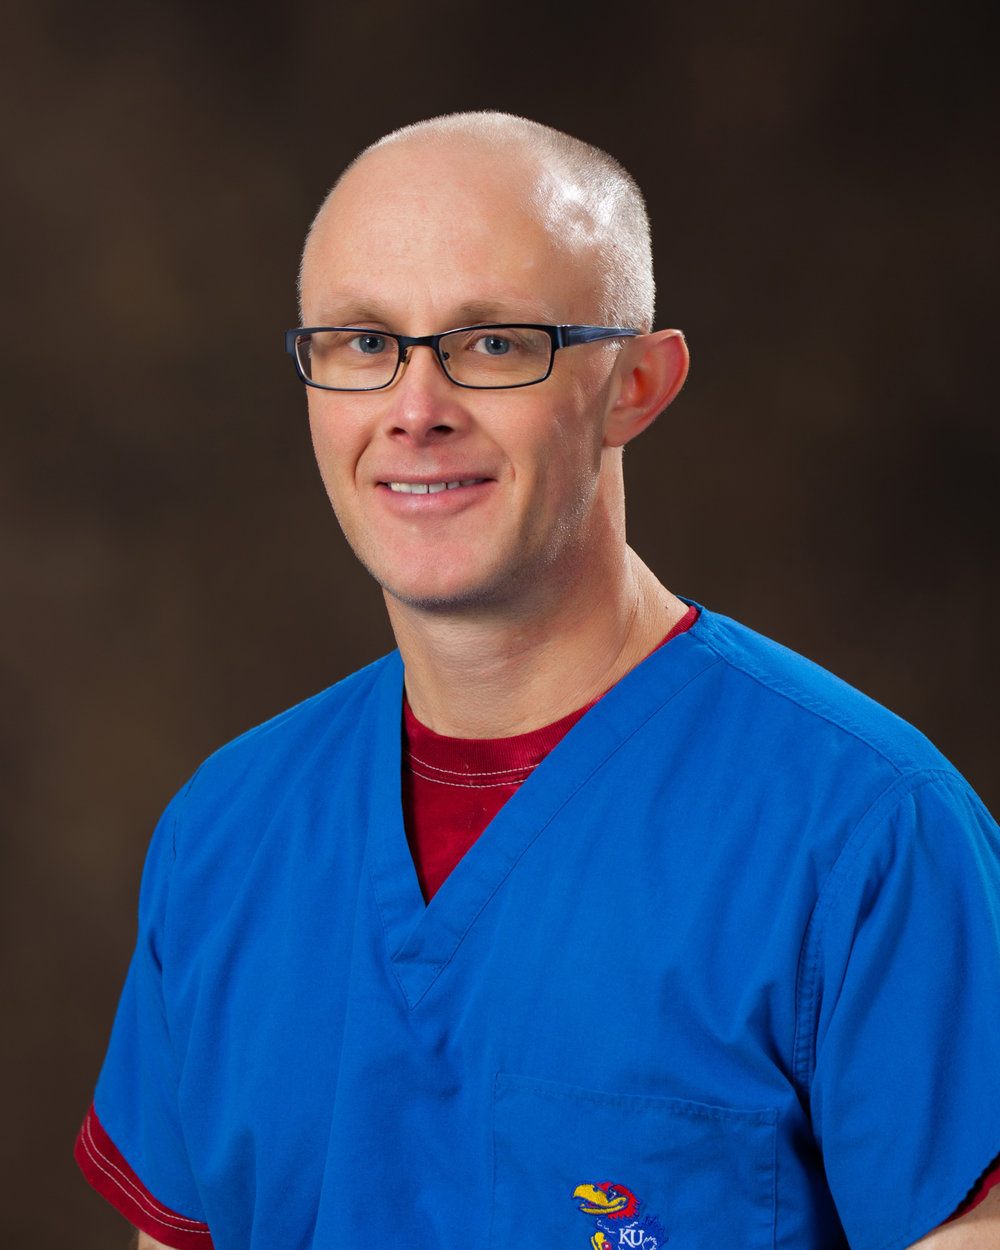 CHAD CARVER, M.D.  Emergency Room / Trauma Director  chad.carver@nlgh.org  (575) 396-6611 ext. 1569